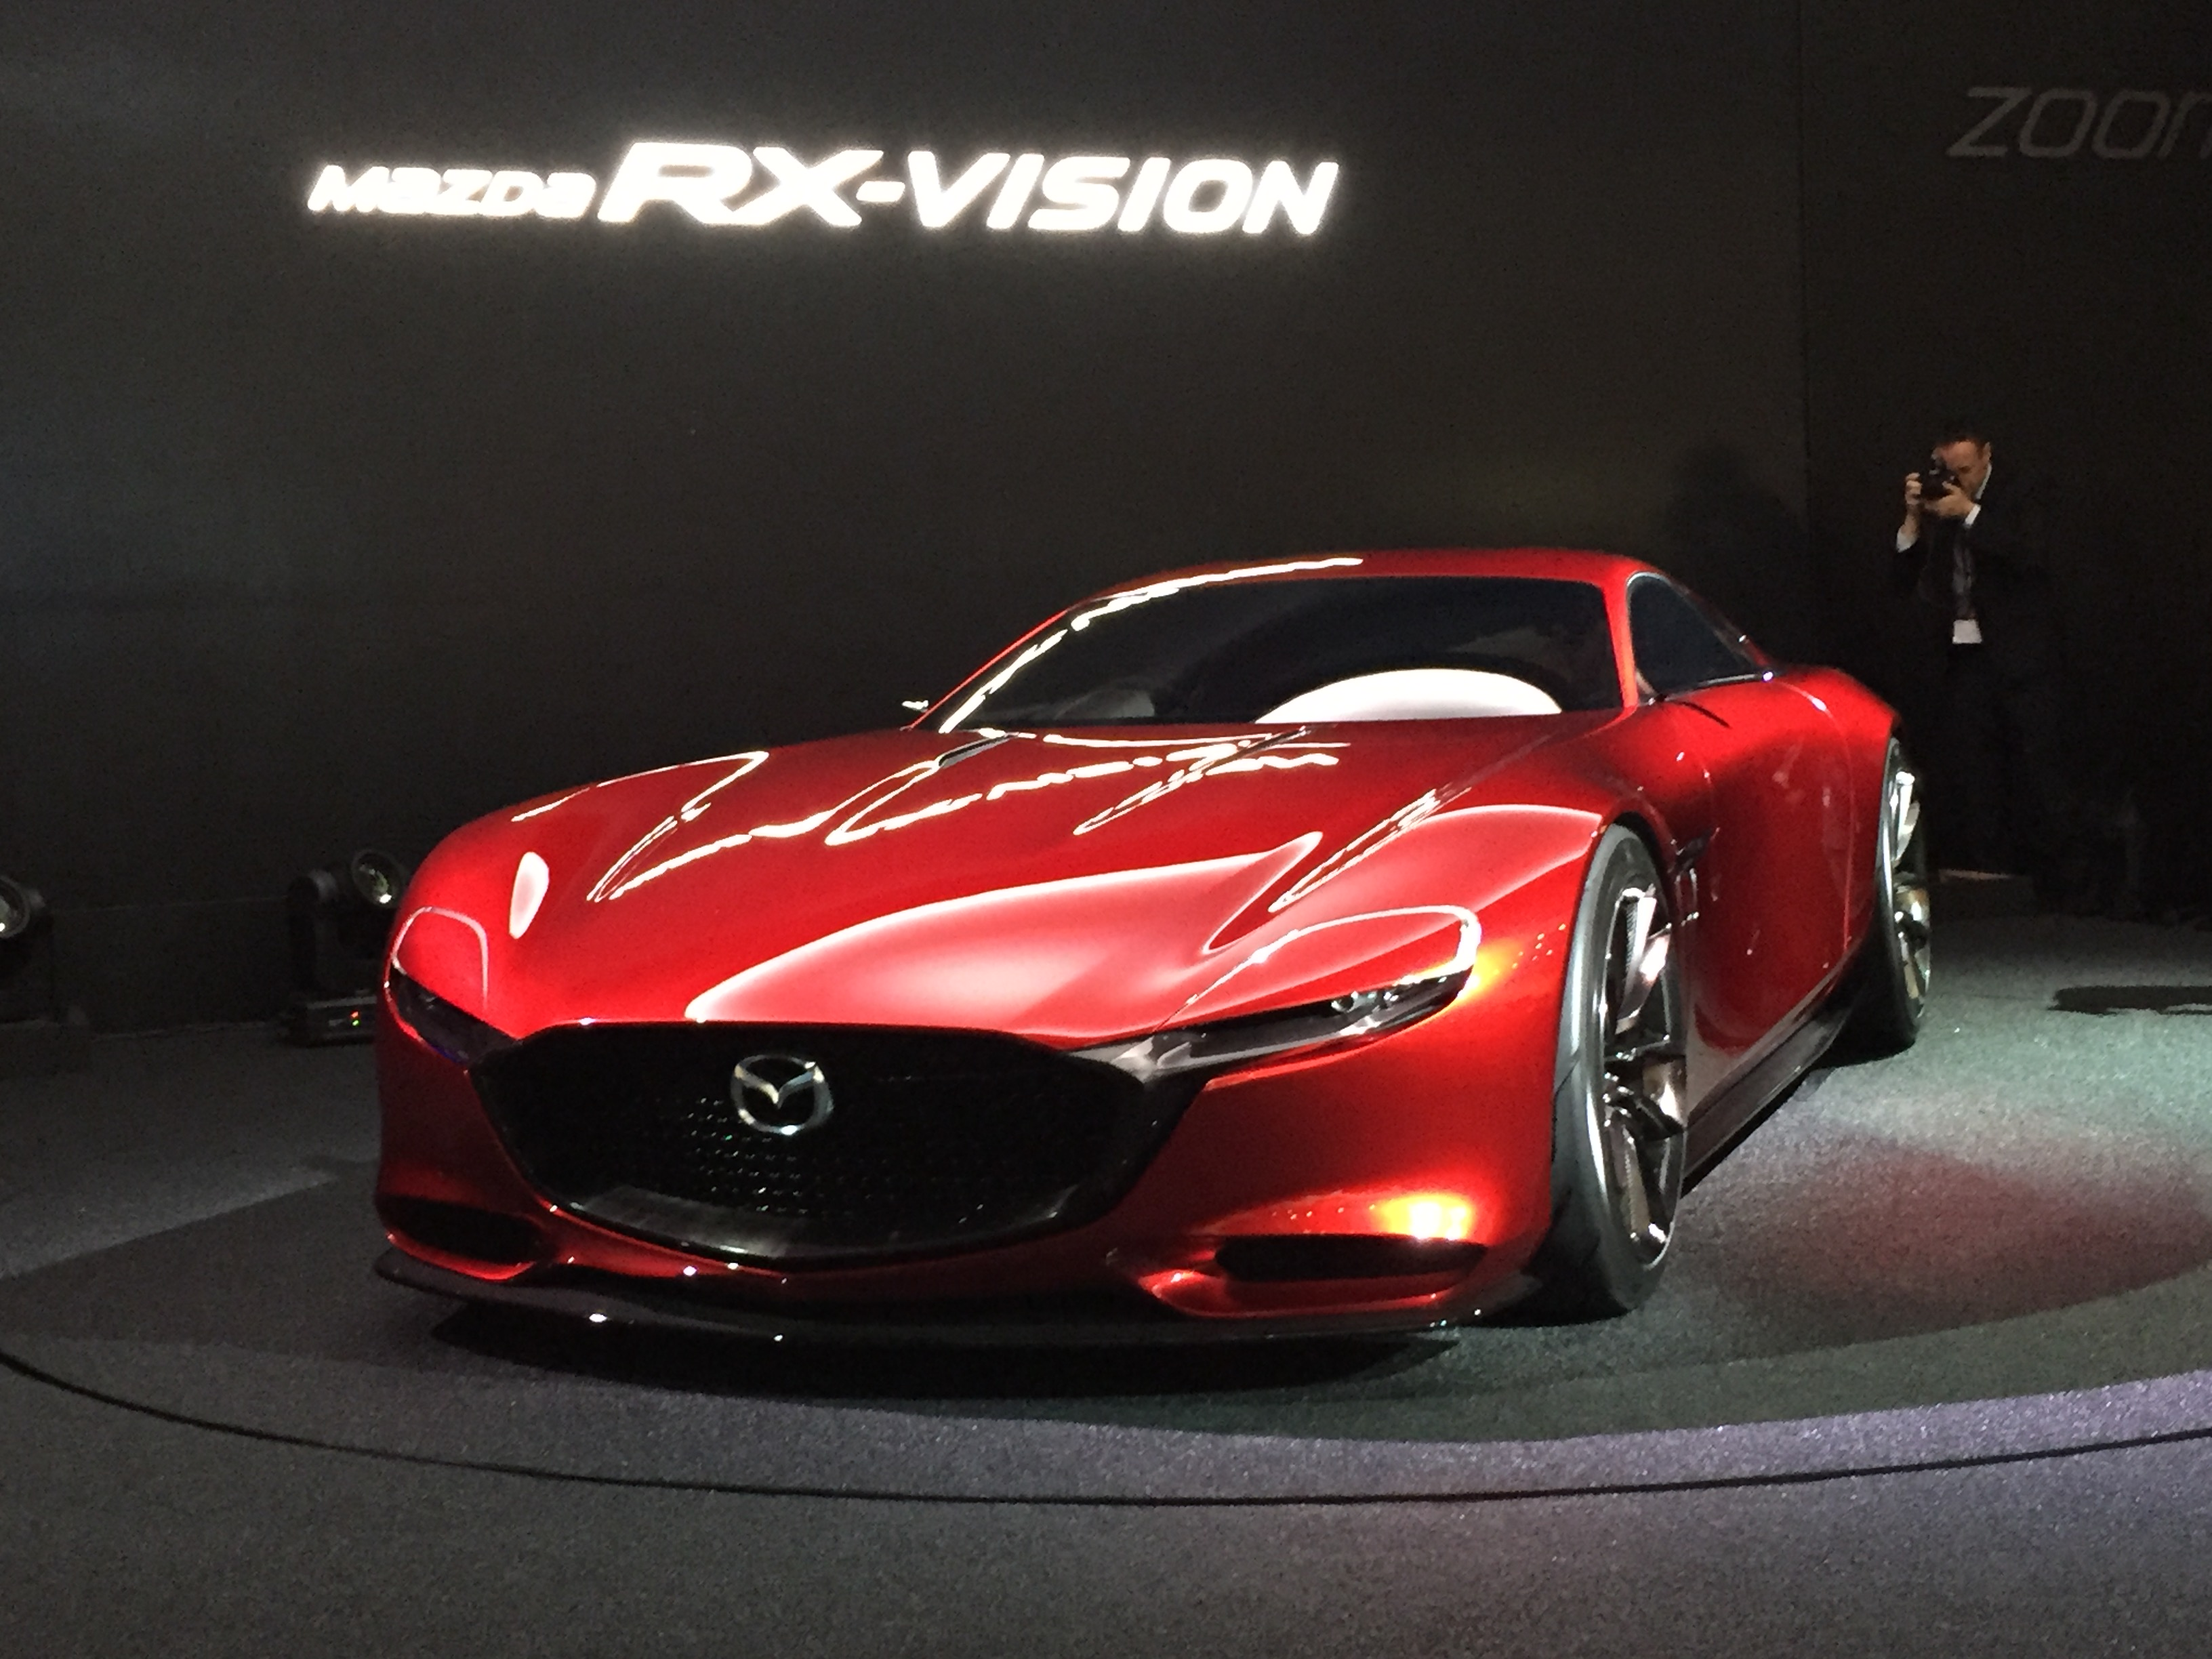 Mazda RX-Vision concept hints at next rotary engine